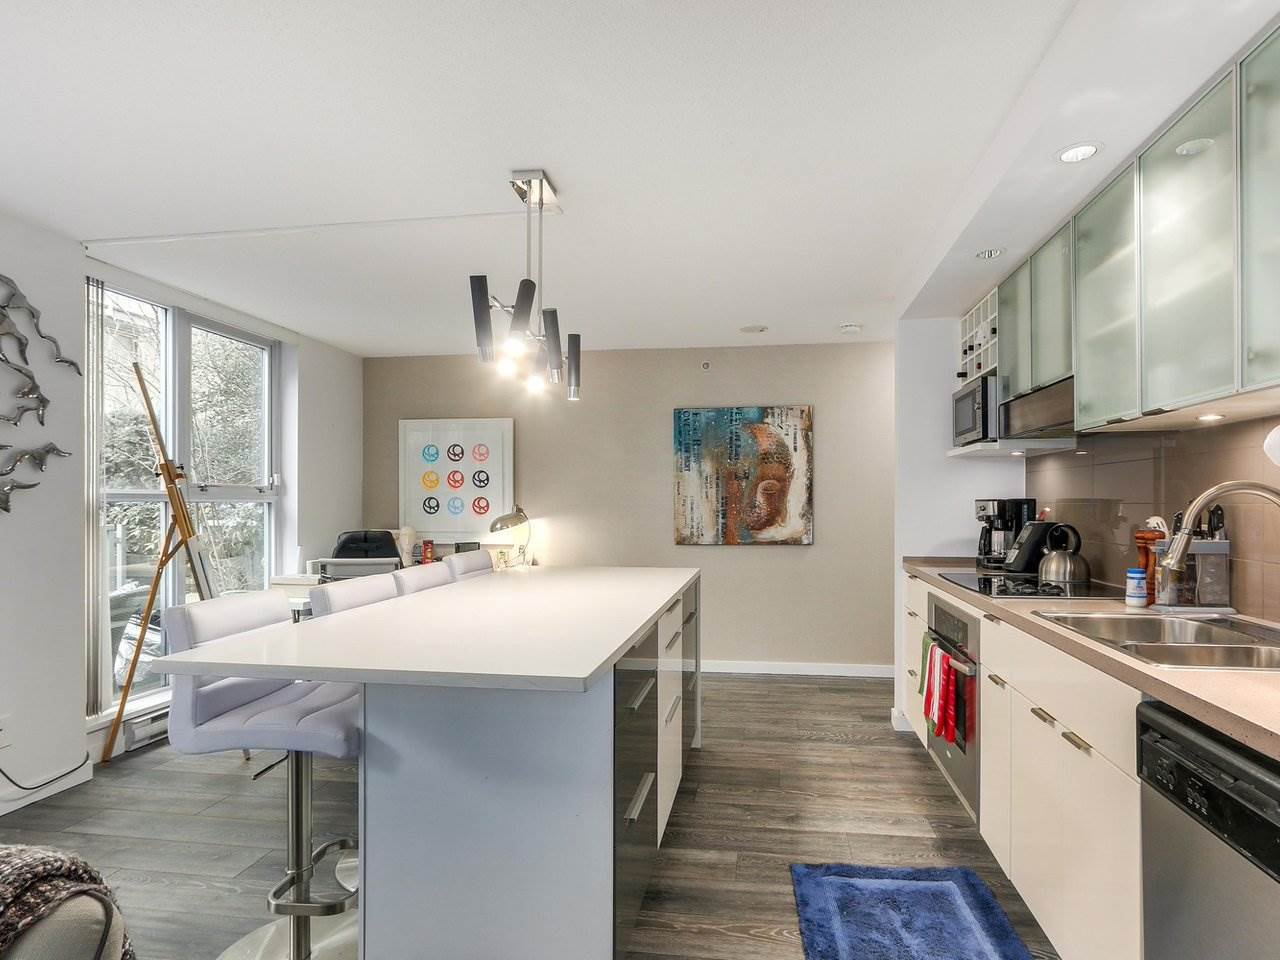 Photo 10: Photos: 217 168 POWELL Street in Vancouver: Downtown VE Condo for sale (Vancouver East)  : MLS®# R2386644